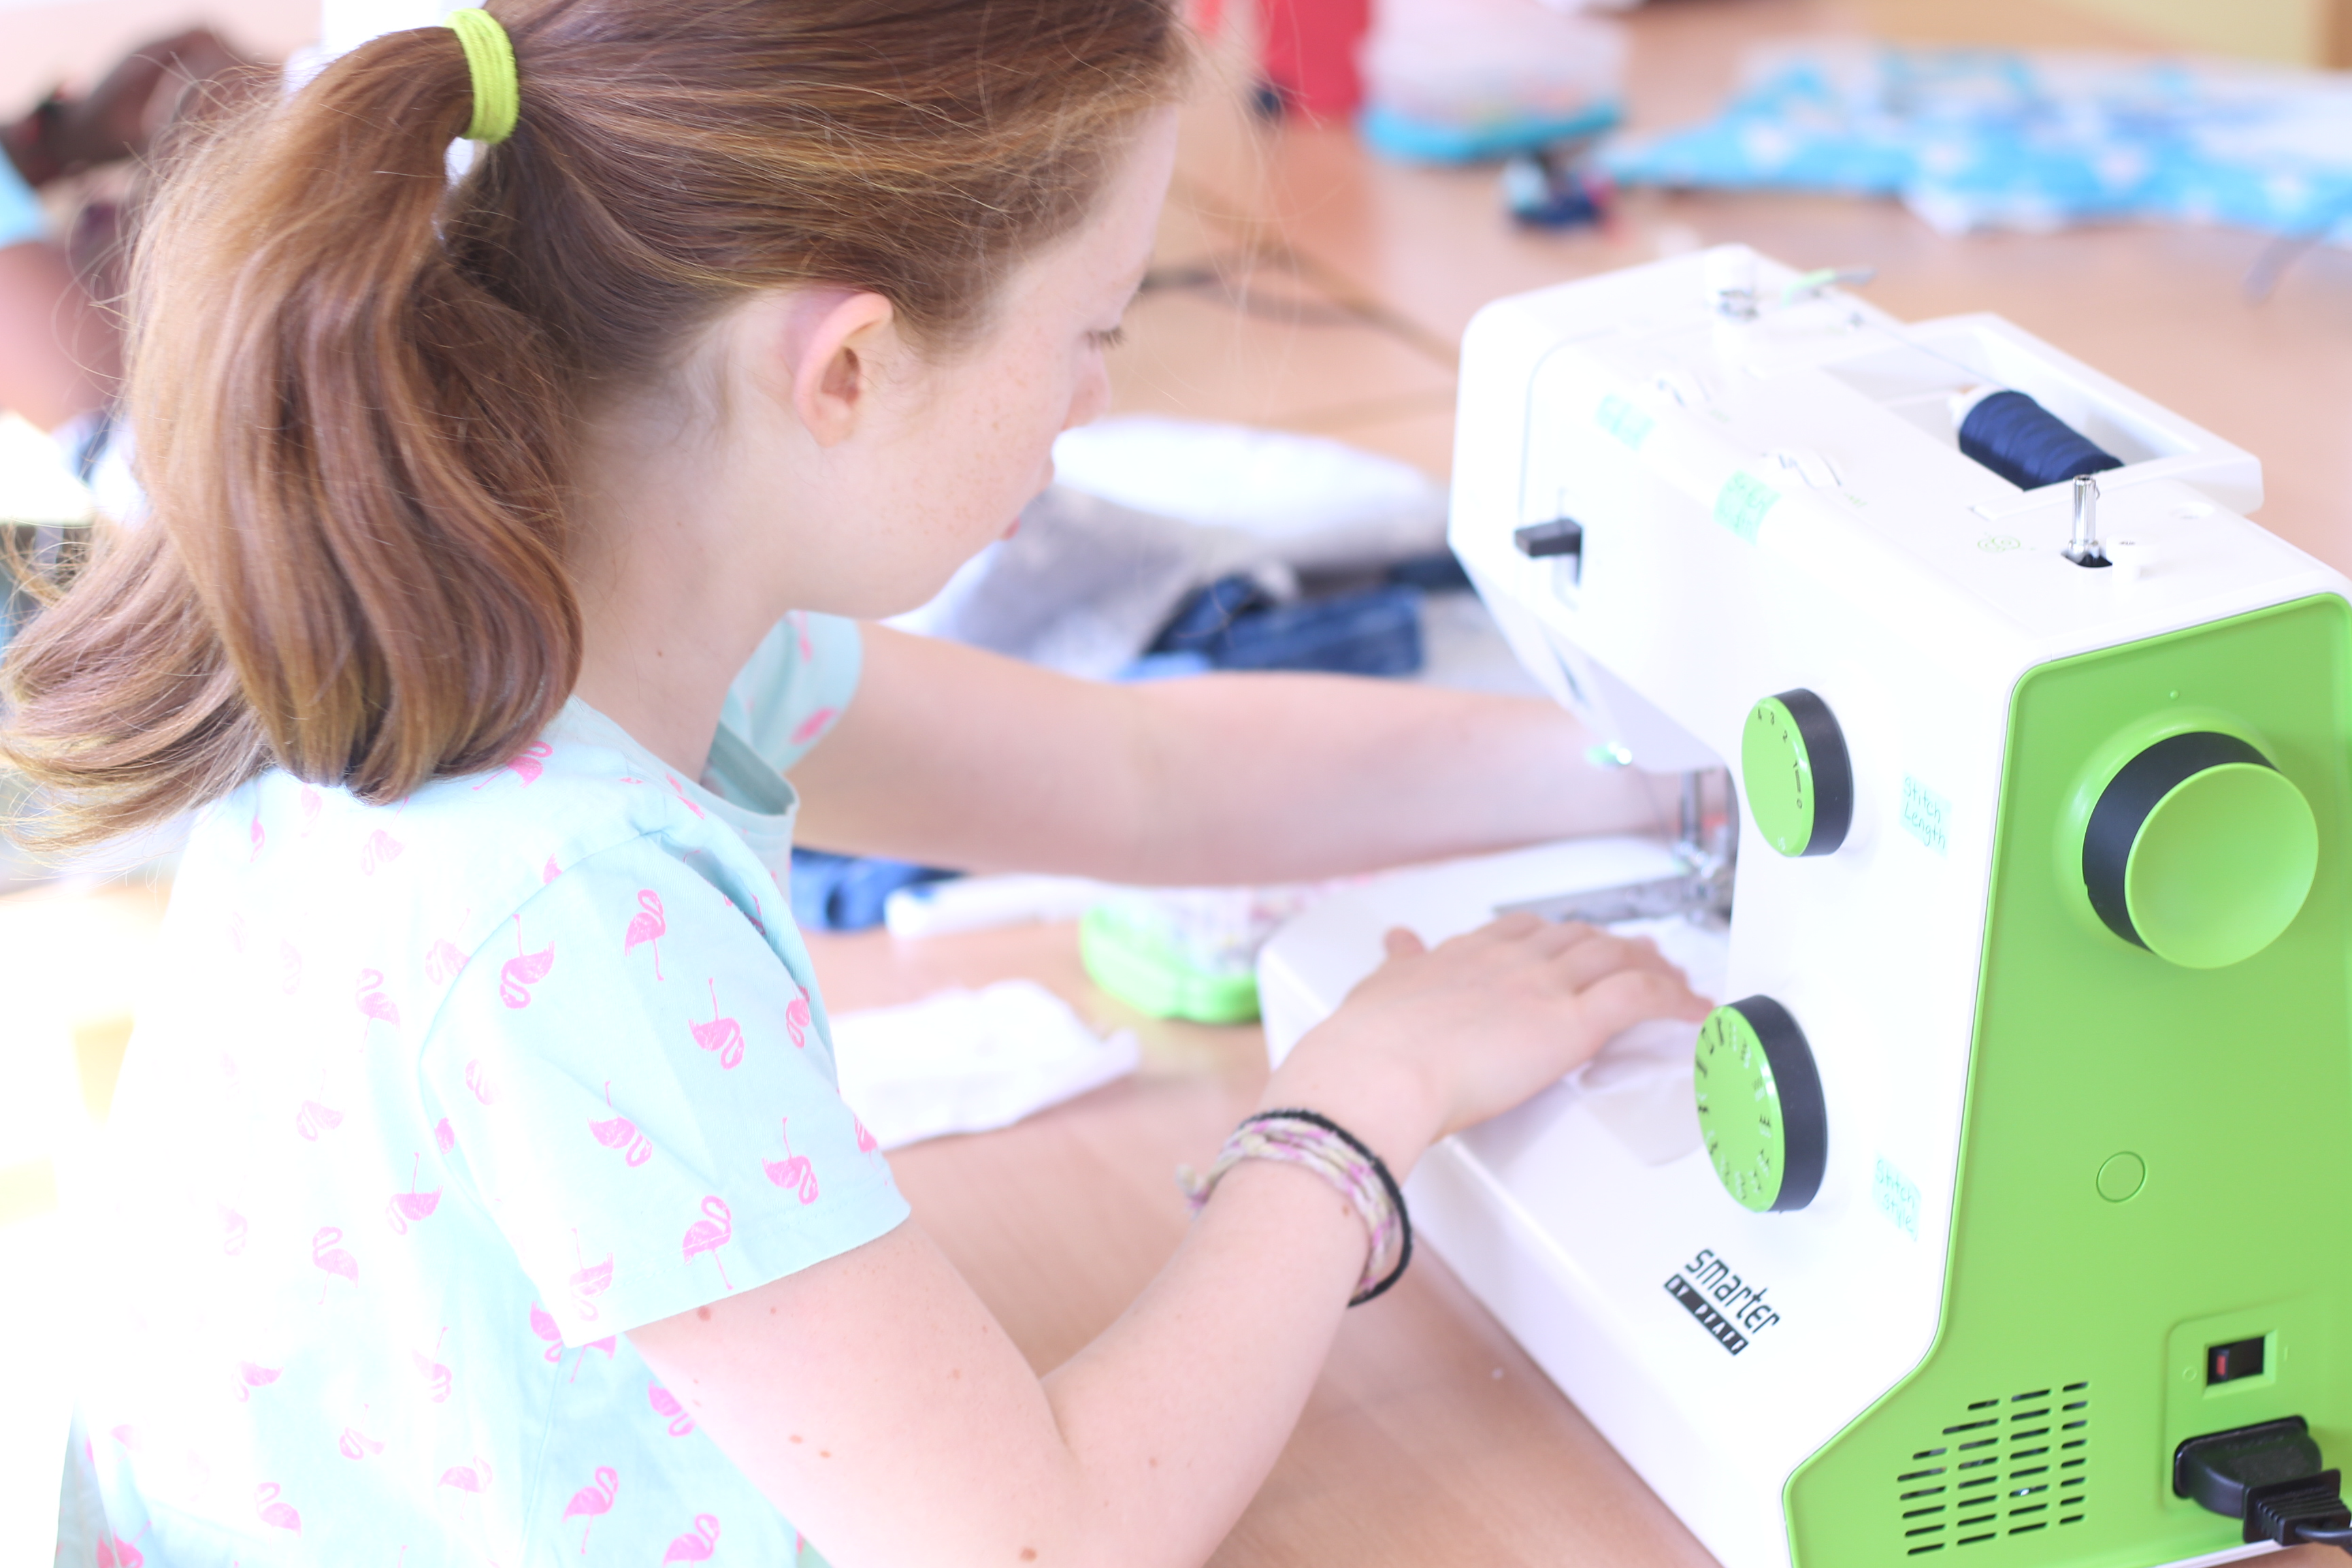 Children's Sewing Class - Educate Together National School